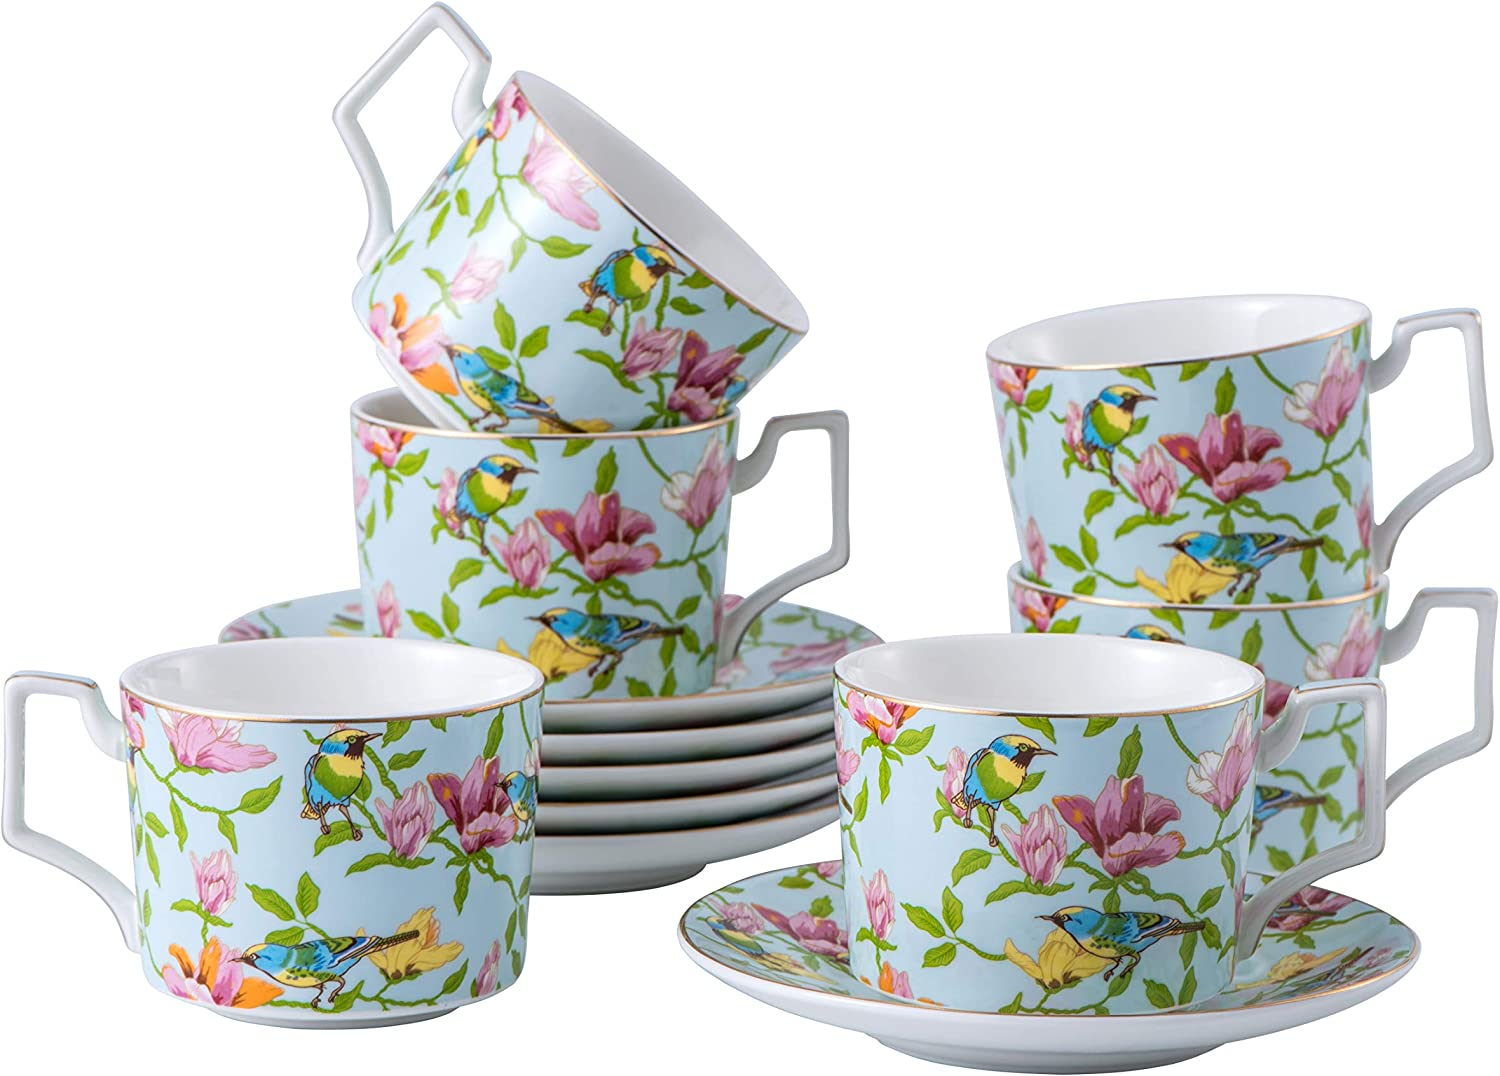 Low price Set of 6 8.5 oz Tea At the price Cups British Flor Saucers and